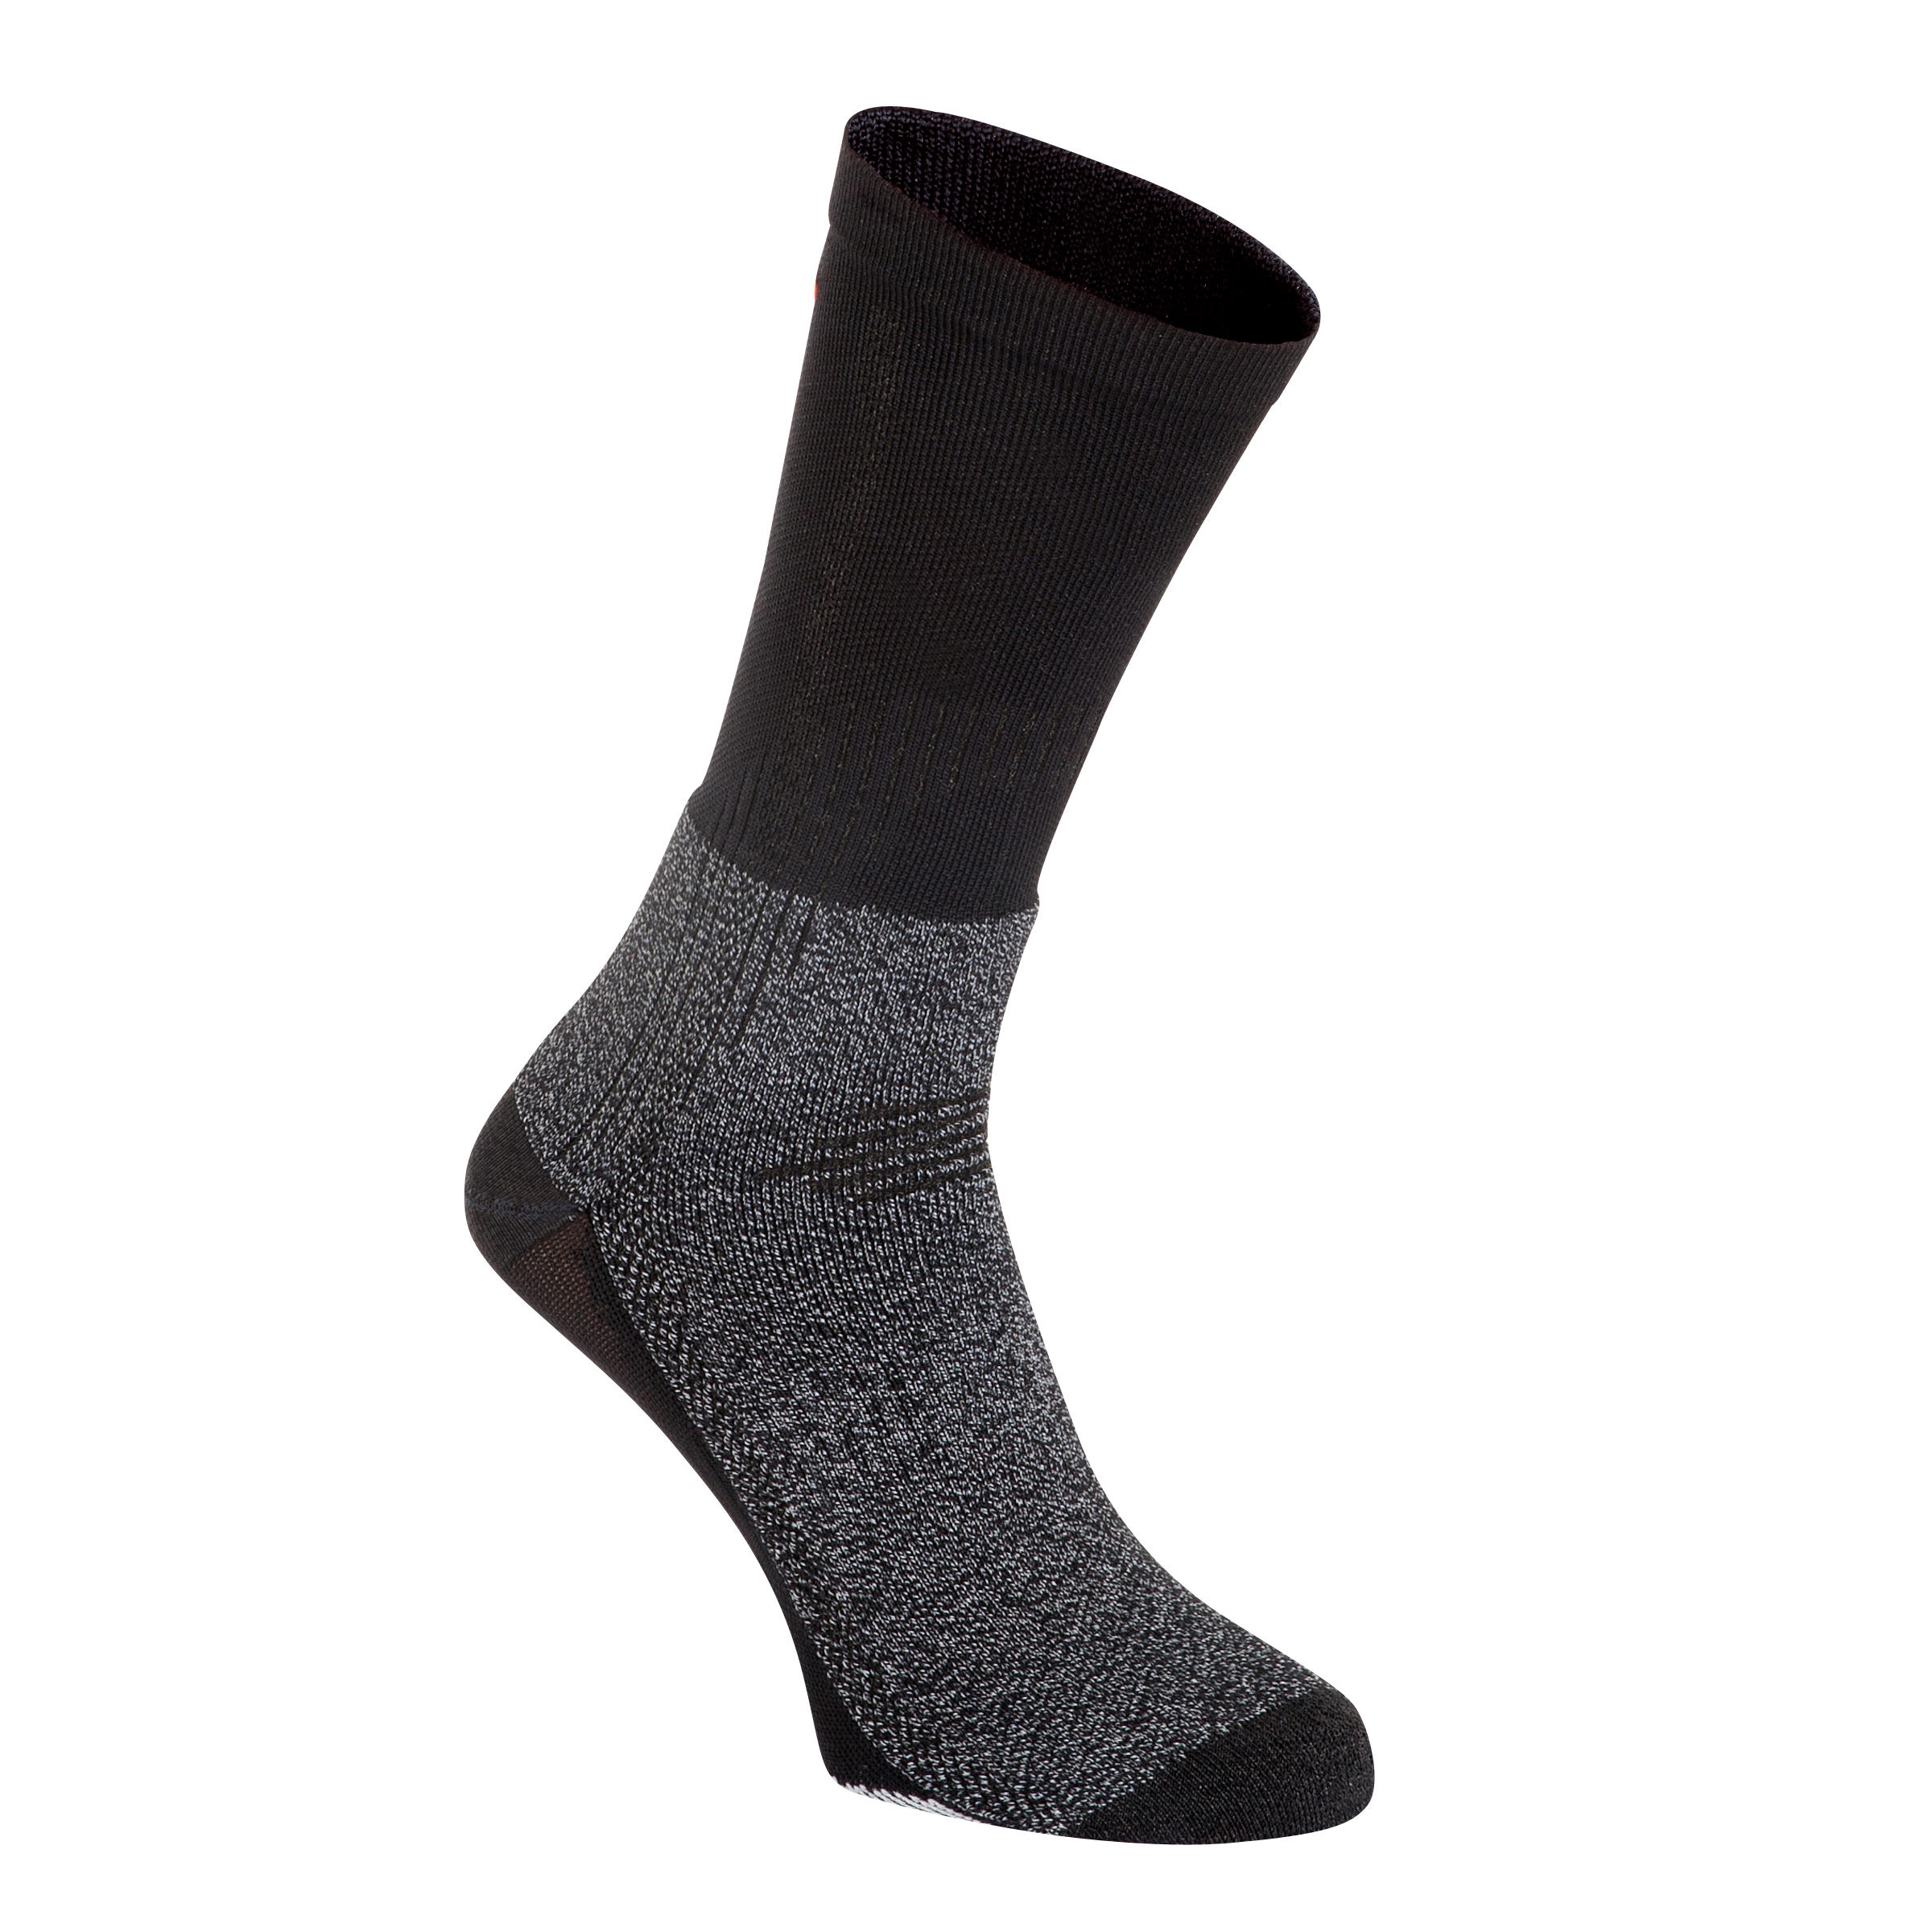 Black Cross-Country Skiing Socks